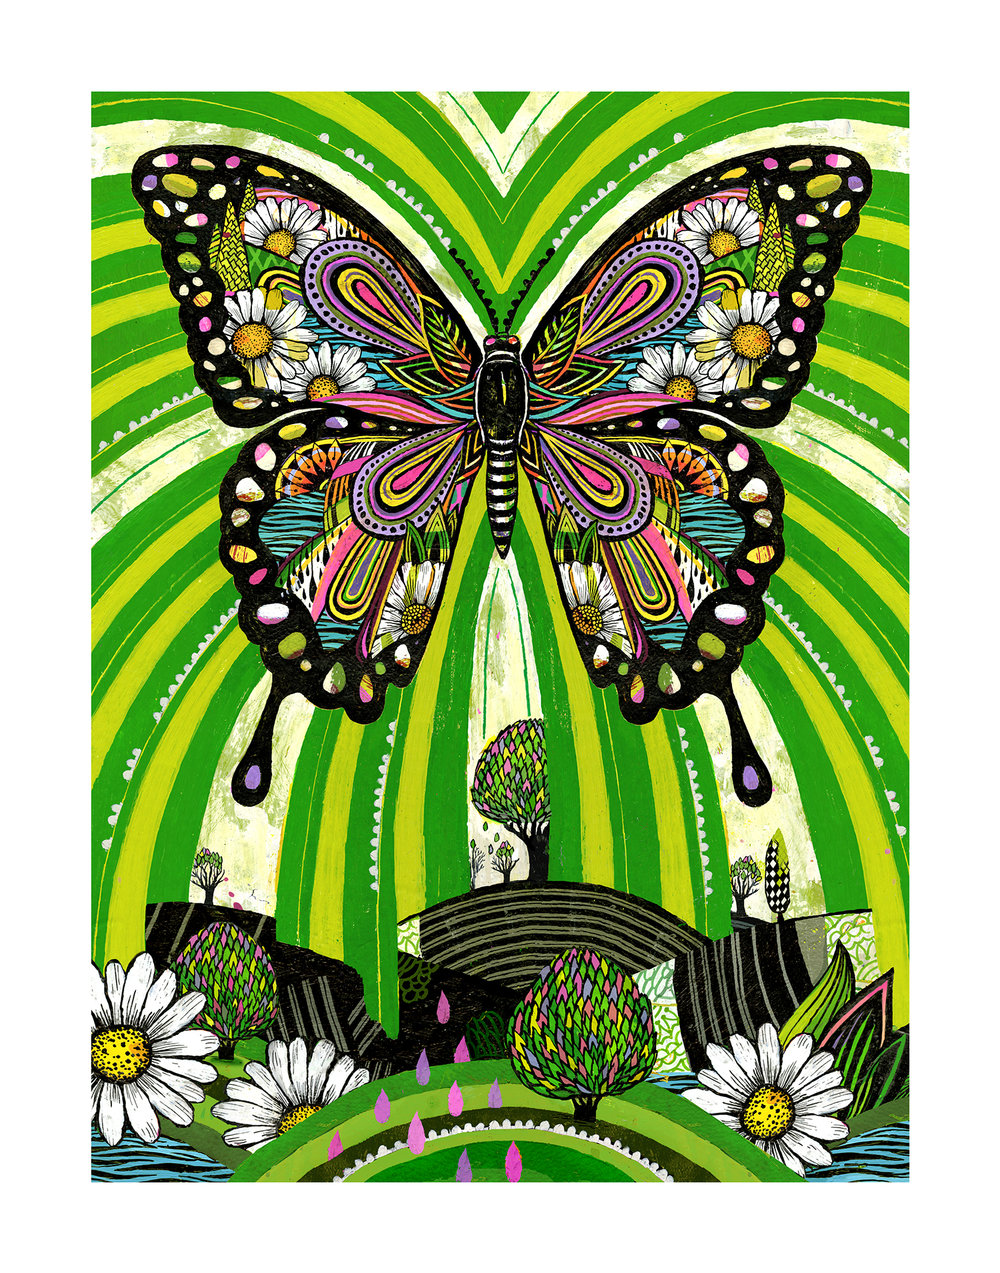 'Dream Butterfly' by Gina Triplett